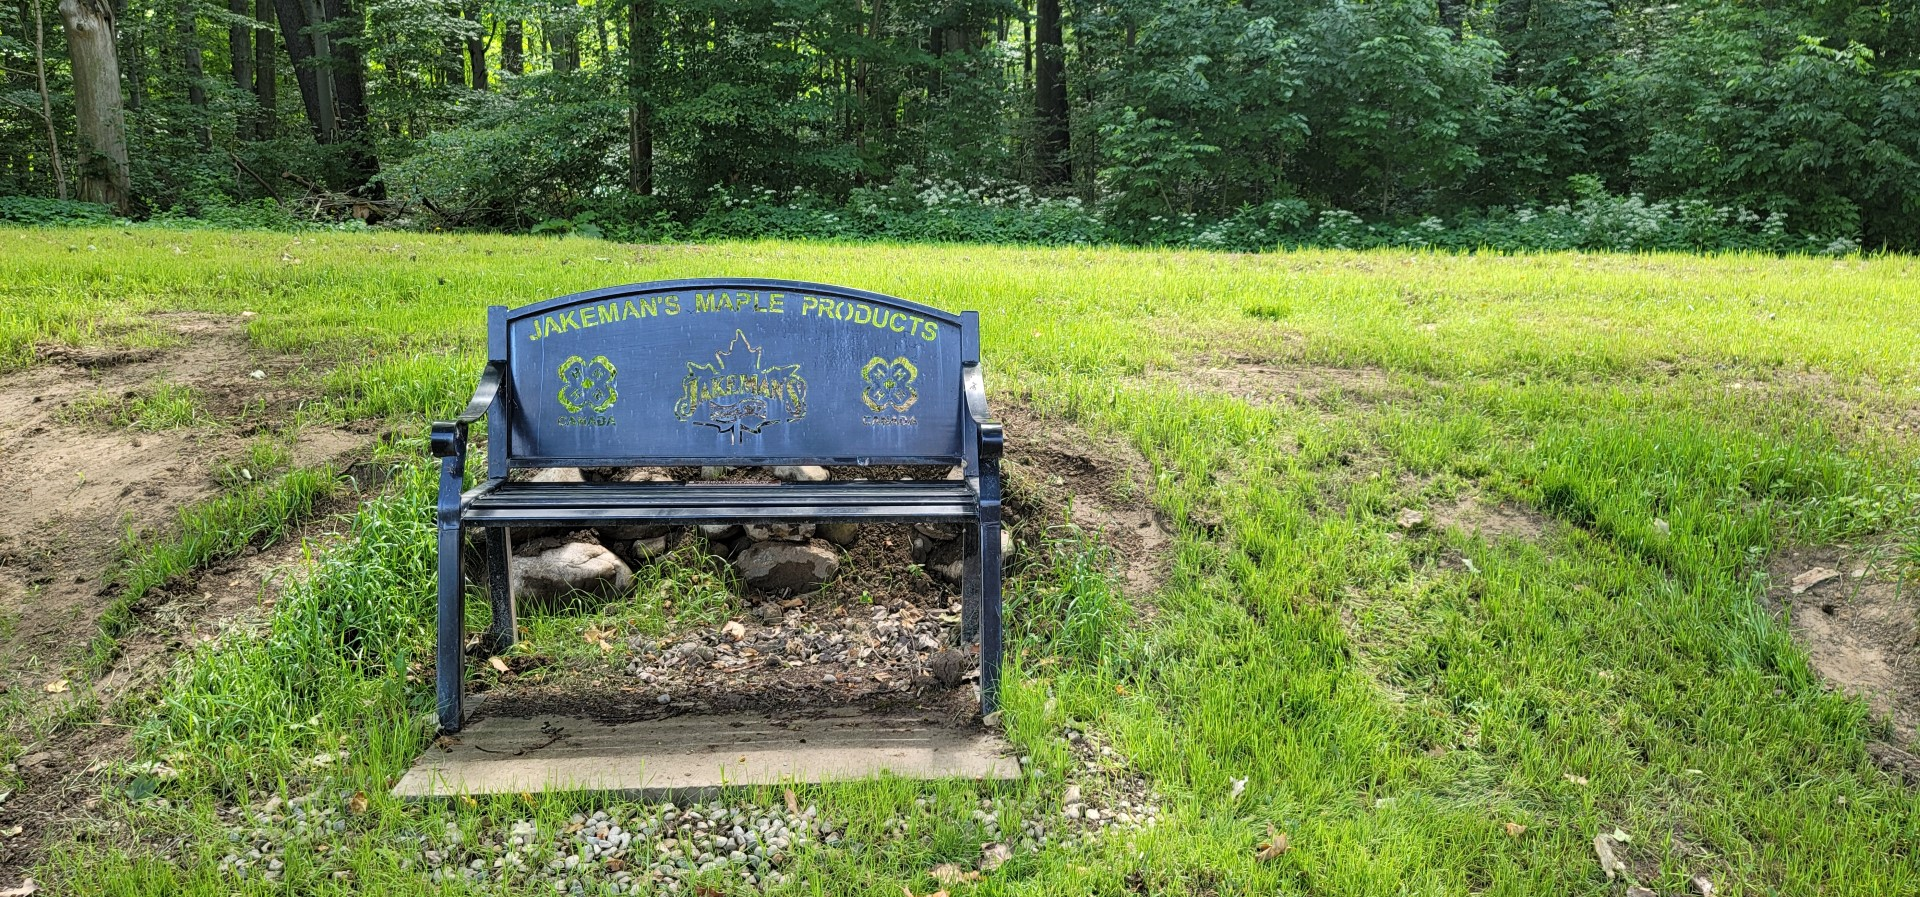 Jakeman's Maple Products engraved on black bench